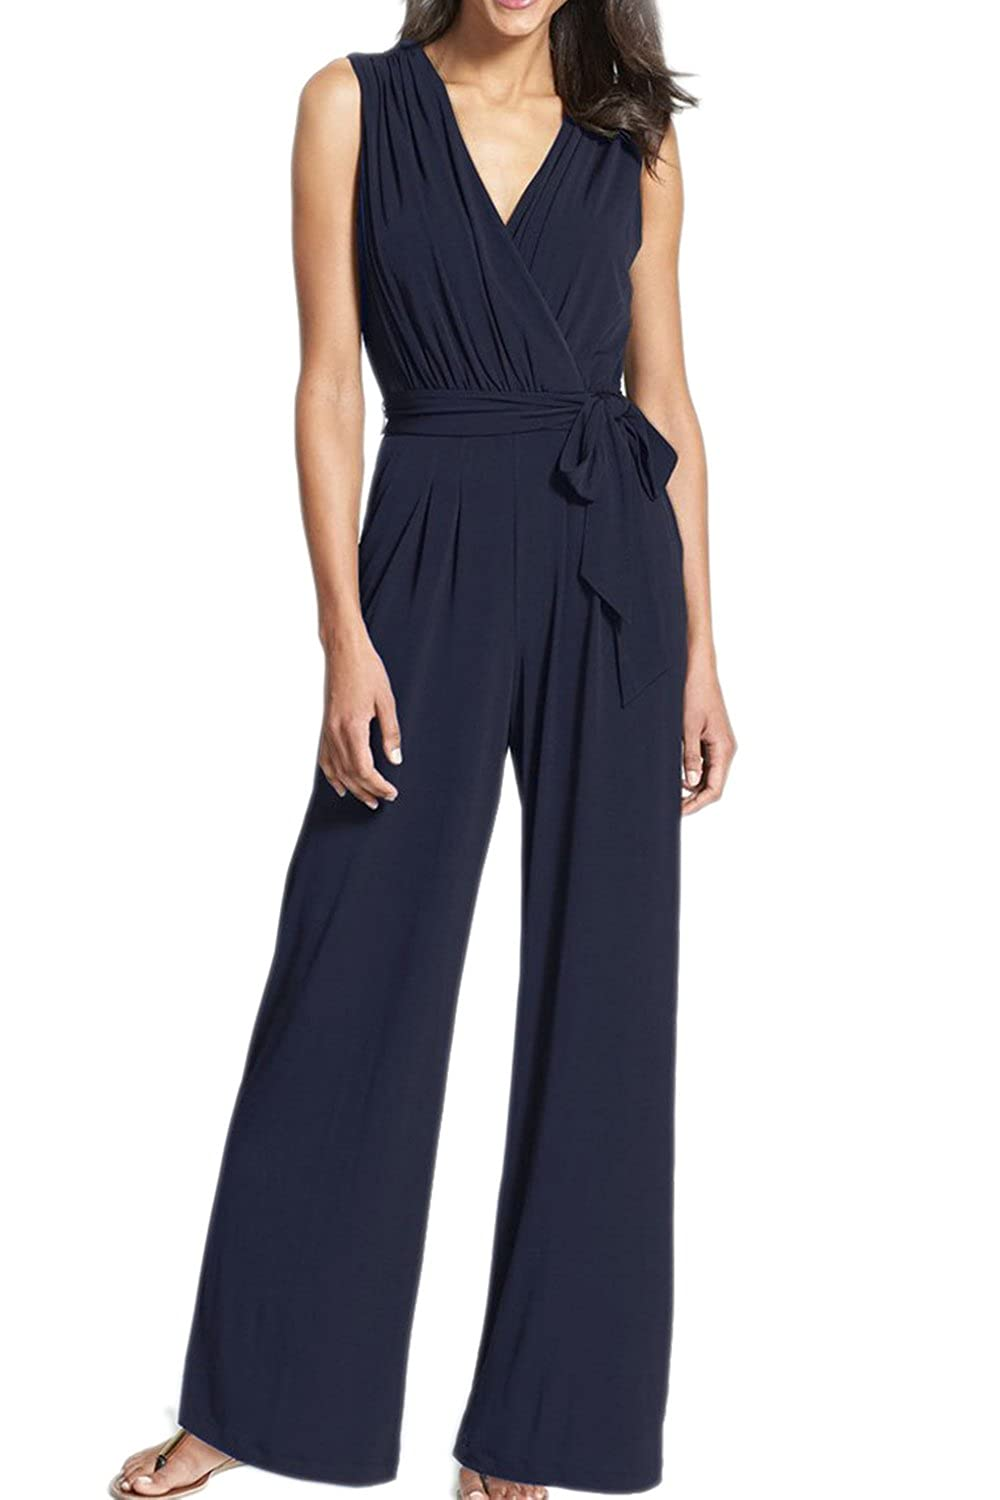 Mupoduvos Womens Summer Elegant V Neck Loose Palazzo Pants Belted Jumpsuit CANZ2478